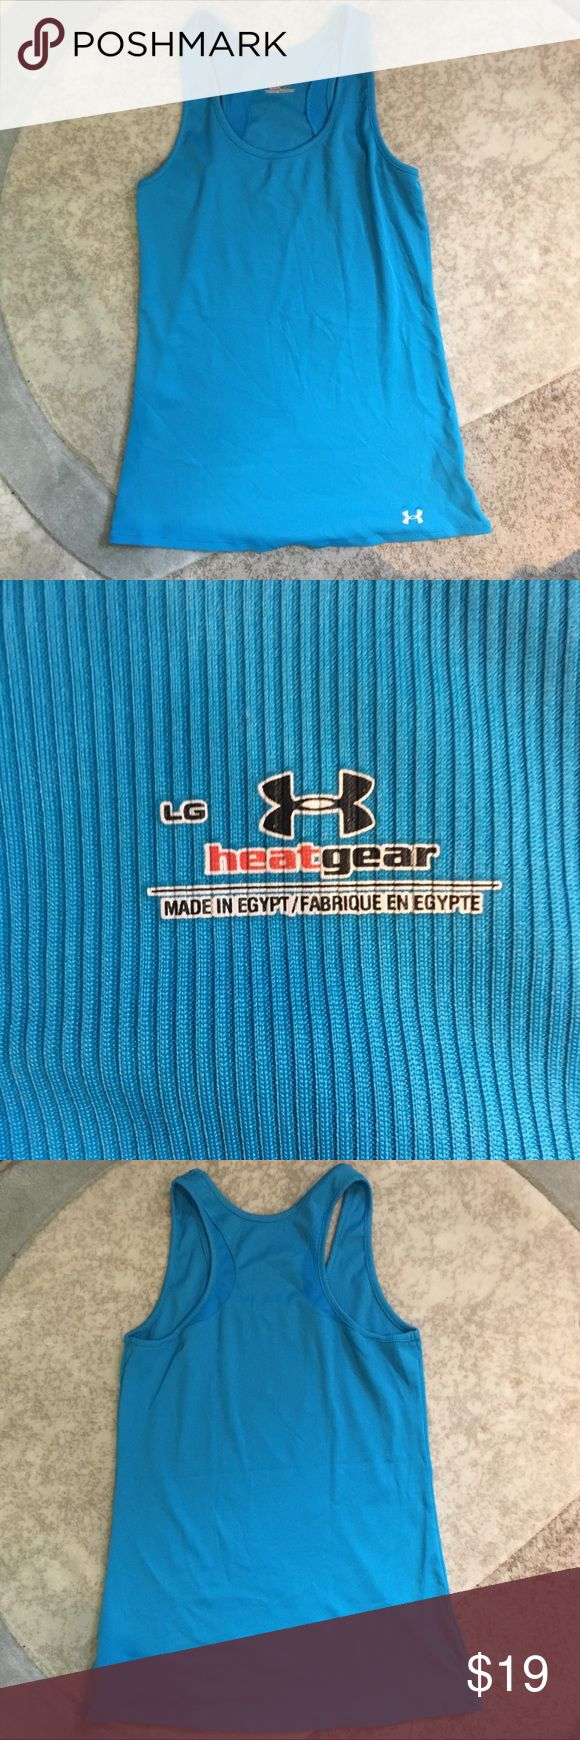 Uber Armour Blue Tank Top - Heat Gear Description: Under Armour Blue Tank Top. Heat Gear. Good condition.  Note to customer:  Happy to share more pics if needed prior to your purchase. Contact me with any questions.  No Trades No Low Offers Please  Refund Policy: No refunds. Under Armour Tops Tank Tops